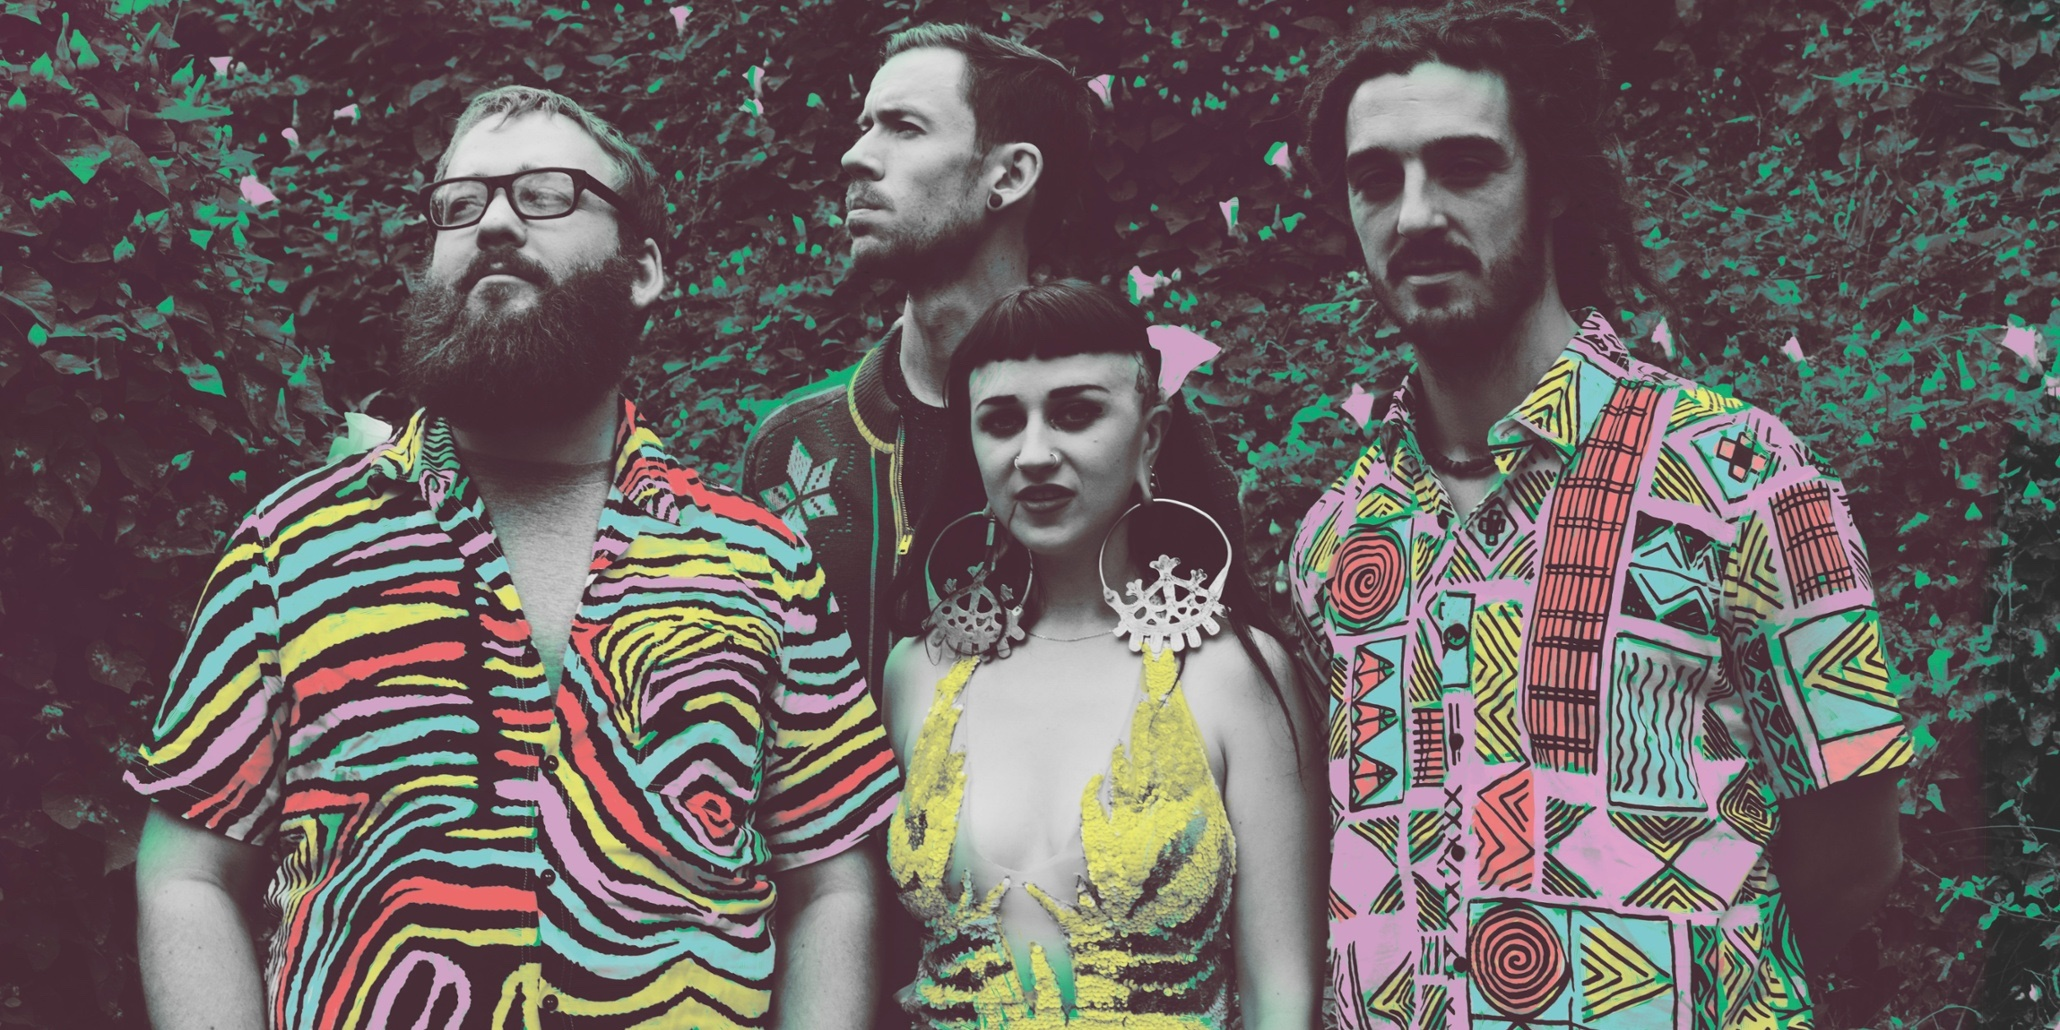 Malasimbo announce phase 1 line-up - Hiatus Kaiyote, Laneous, and more